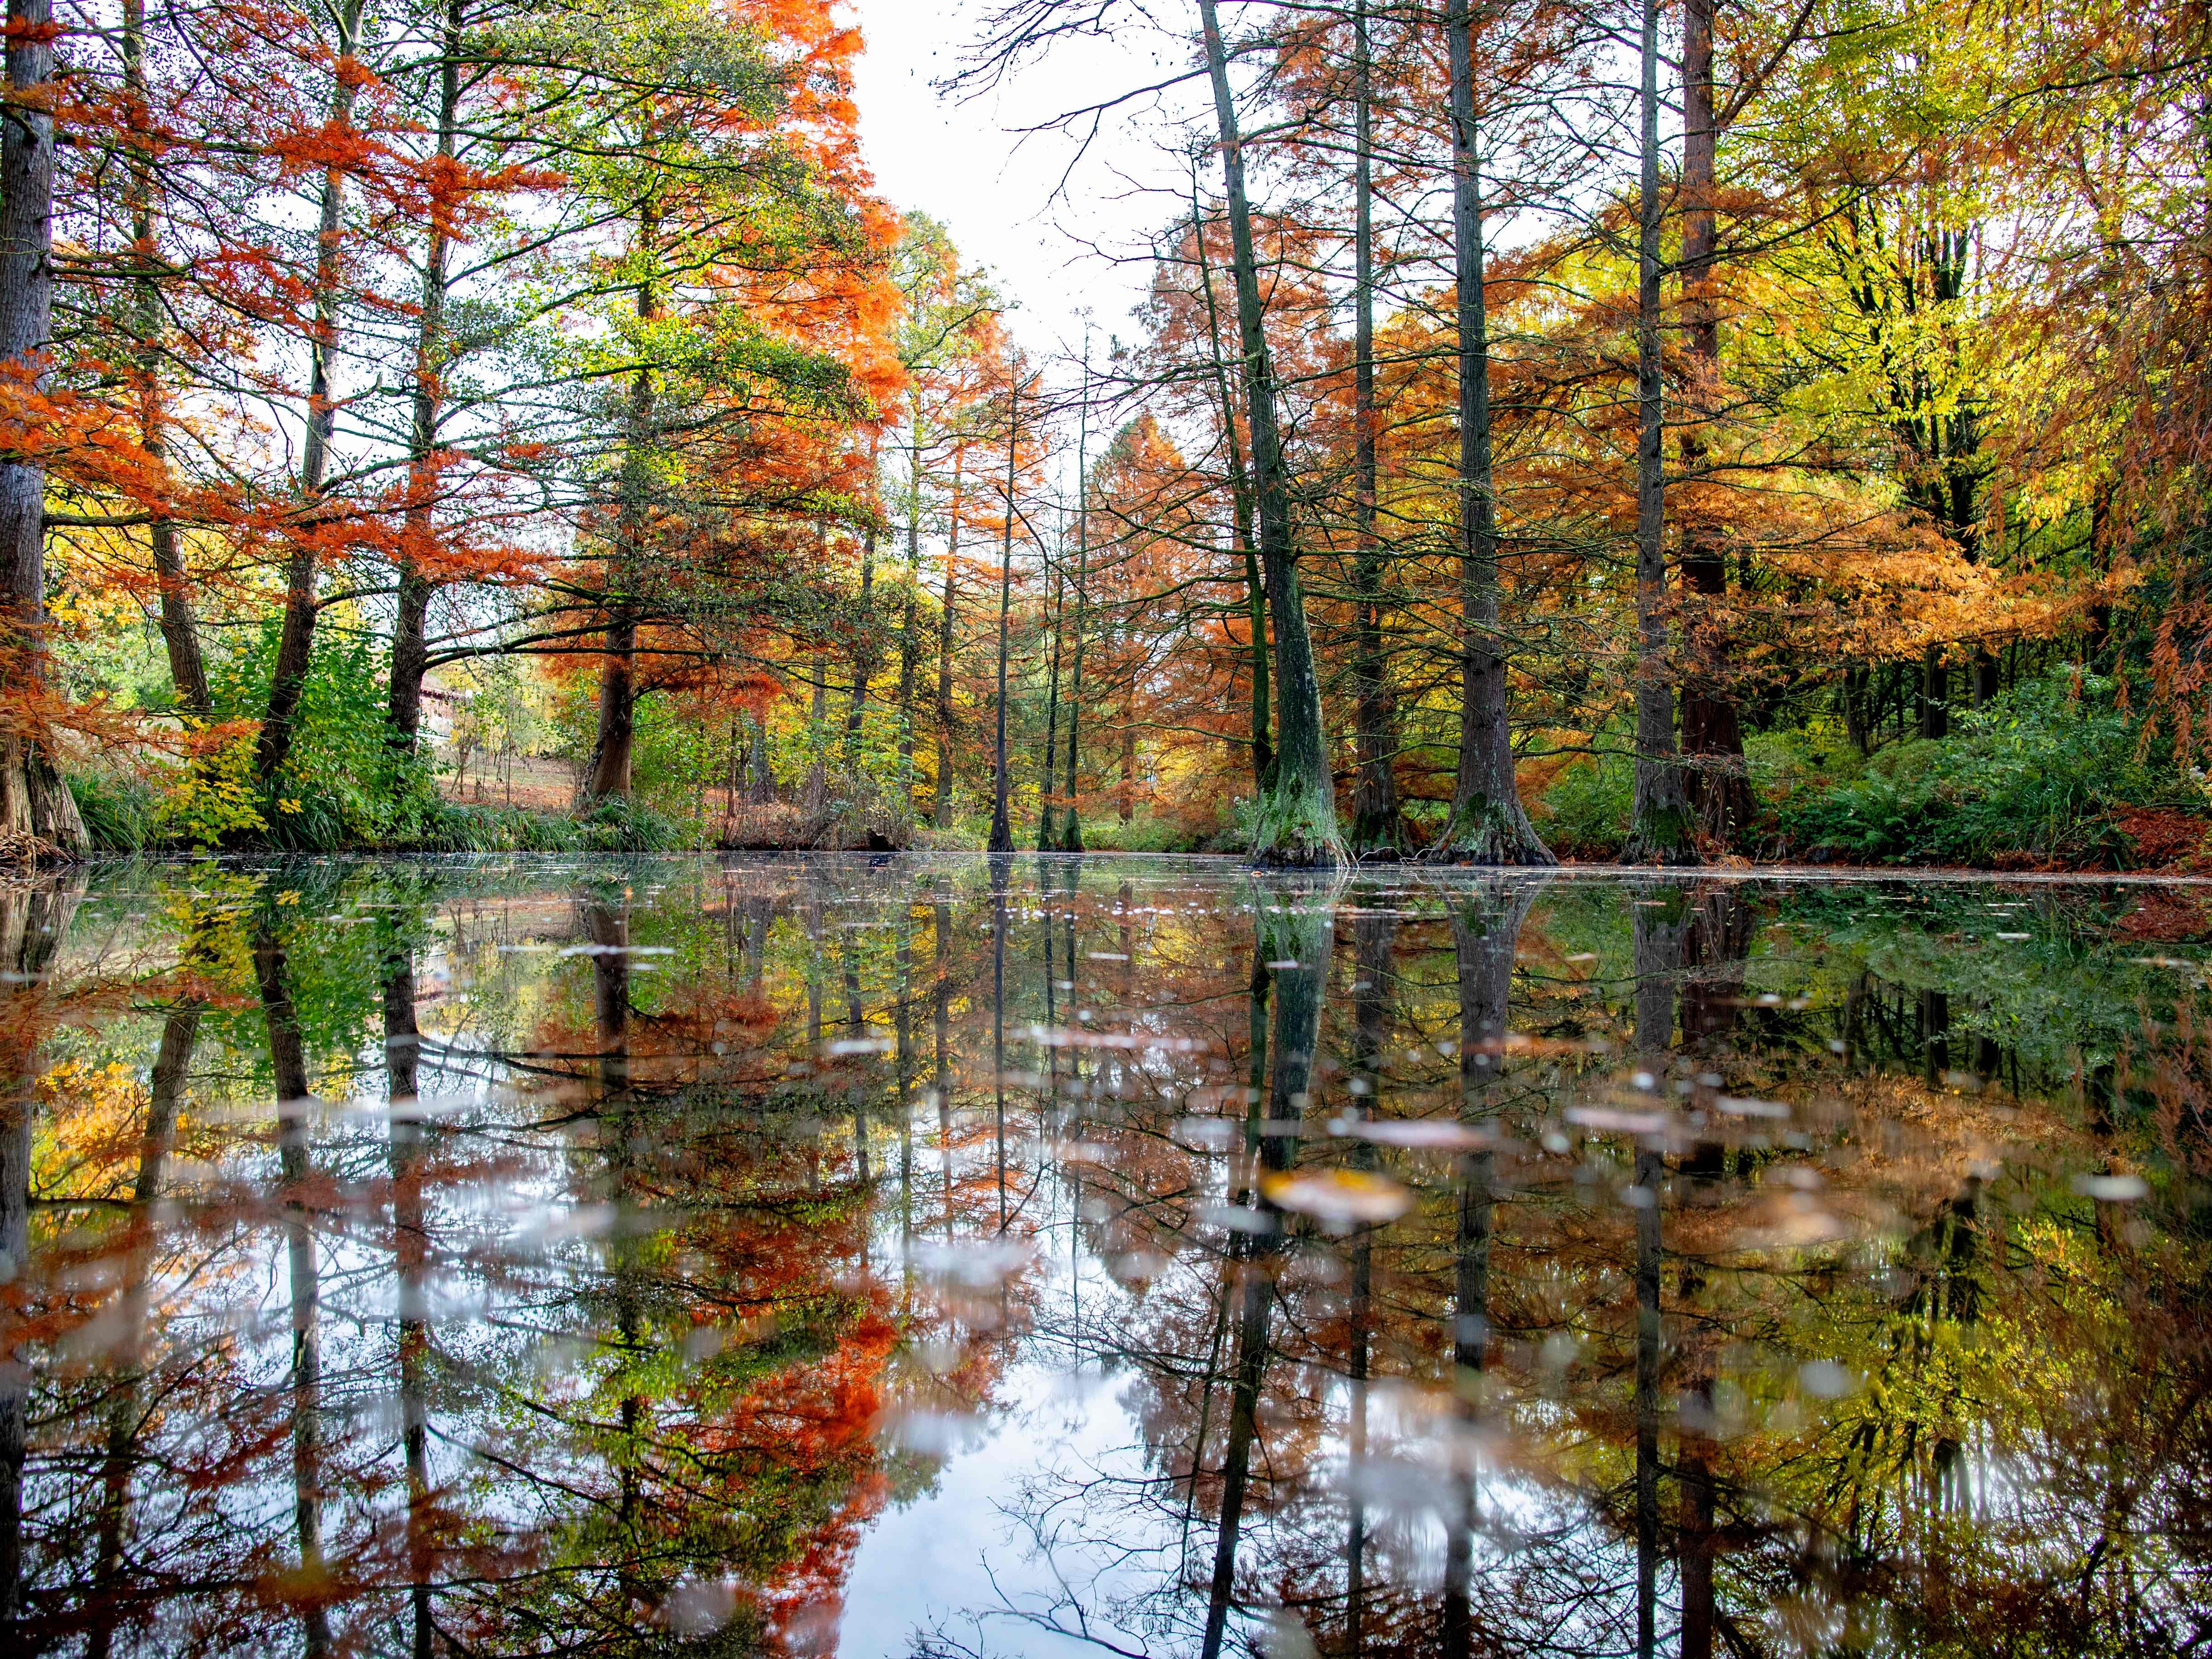 Autumnally colored trees reflect in the water of a pond in Dortmund, Germany, Nov. 6, 2018.